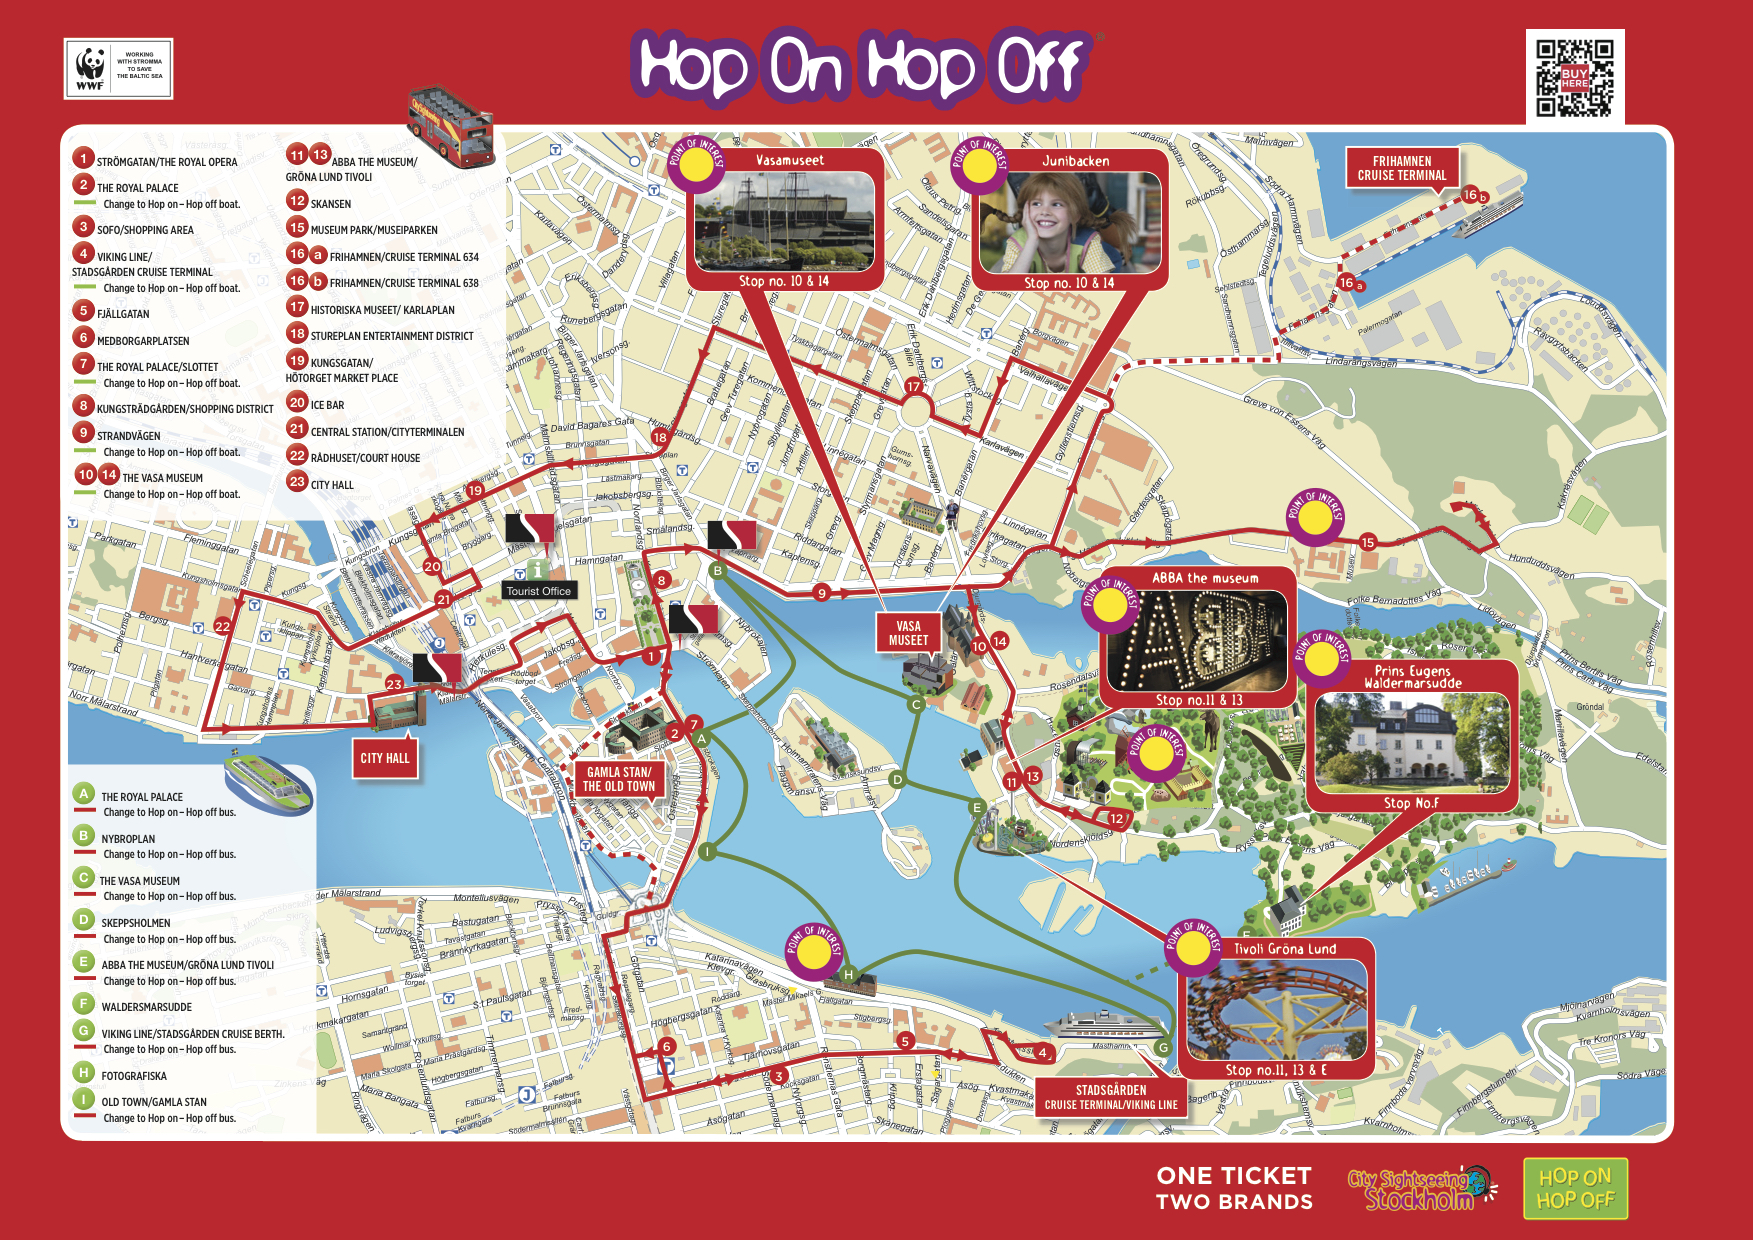 miami hop on hop off tour map City Sightseeing Stockholm Hop On Hop Off Bus And Or Boat Tour miami hop on hop off tour map